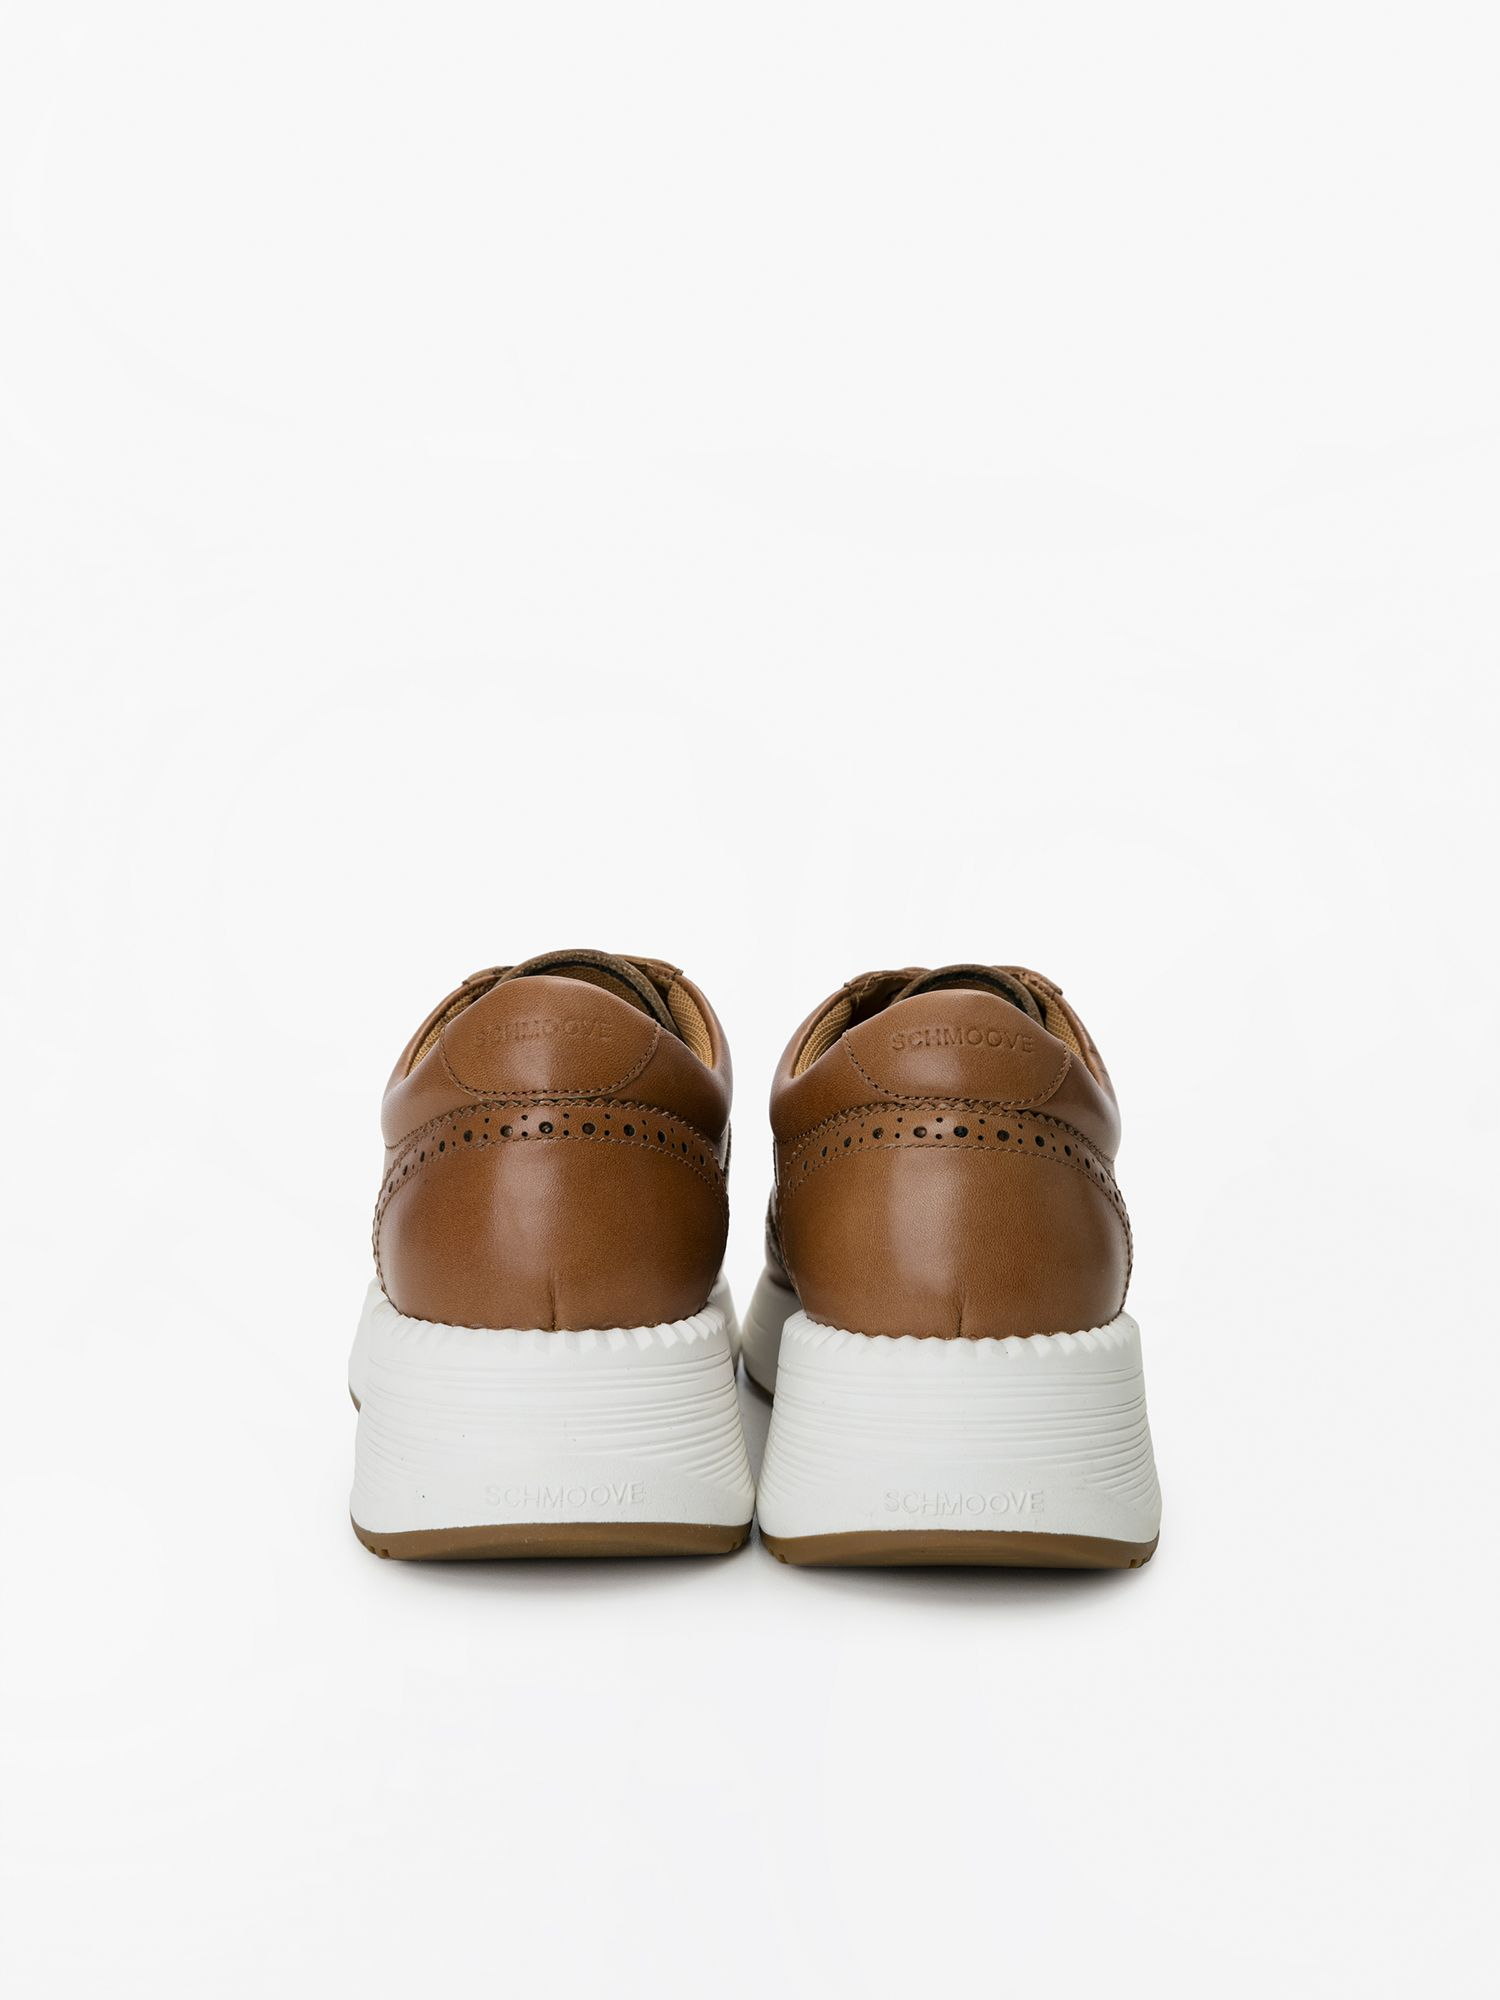 schmoove.fr STARTER PERFOS - SOFT LEATHER - TAN